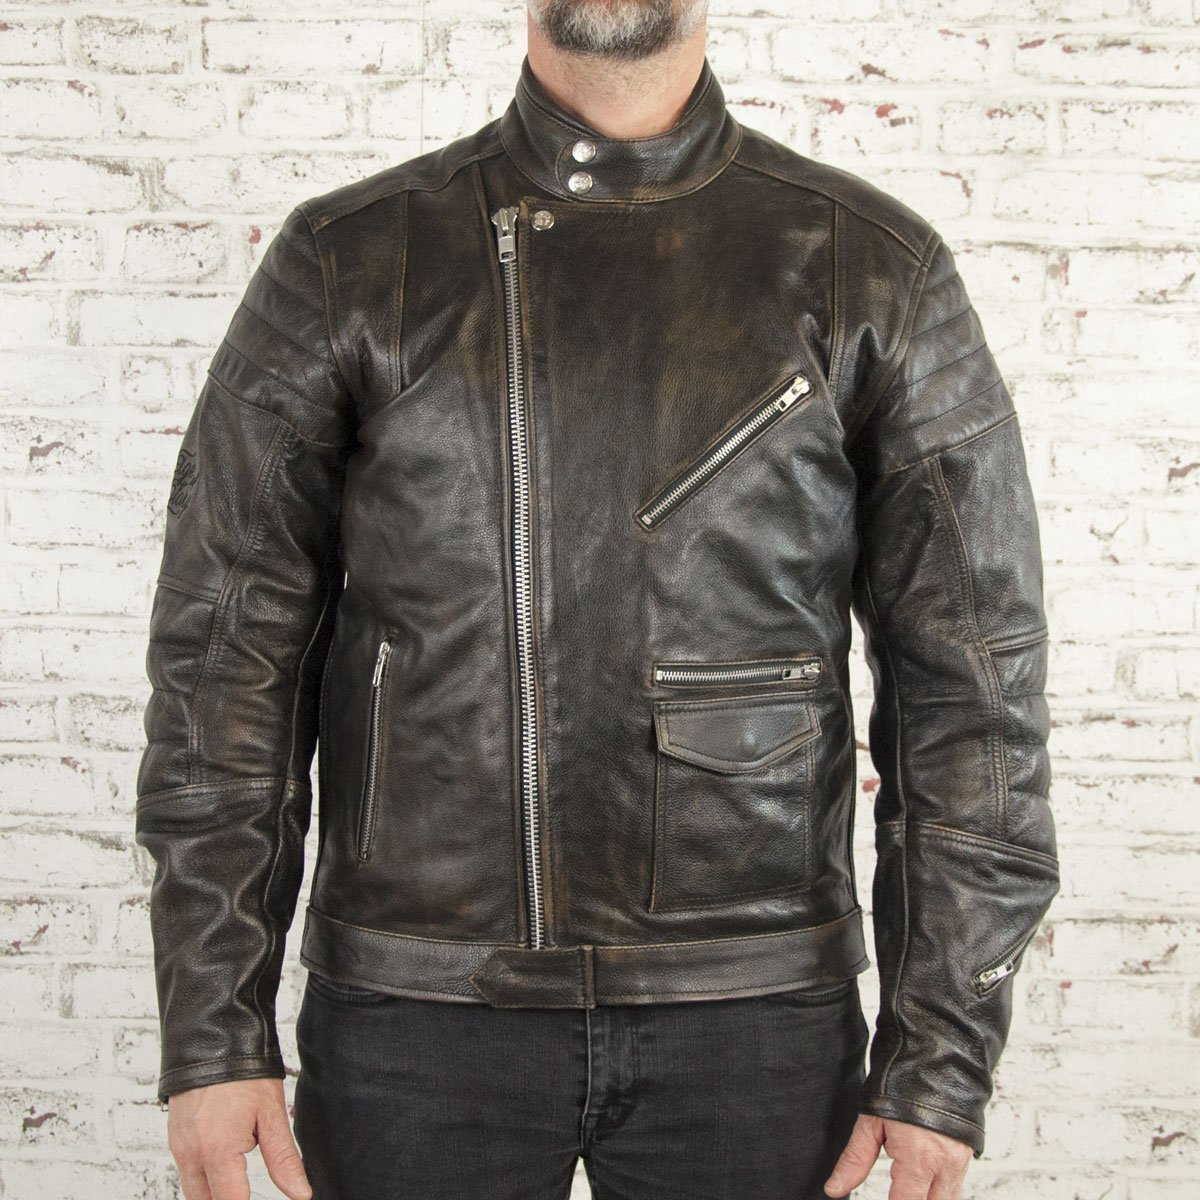 Age of Glory - Age of Glory Rocker Black Leather Jacket - Men's Jackets - Salt Flats Clothing